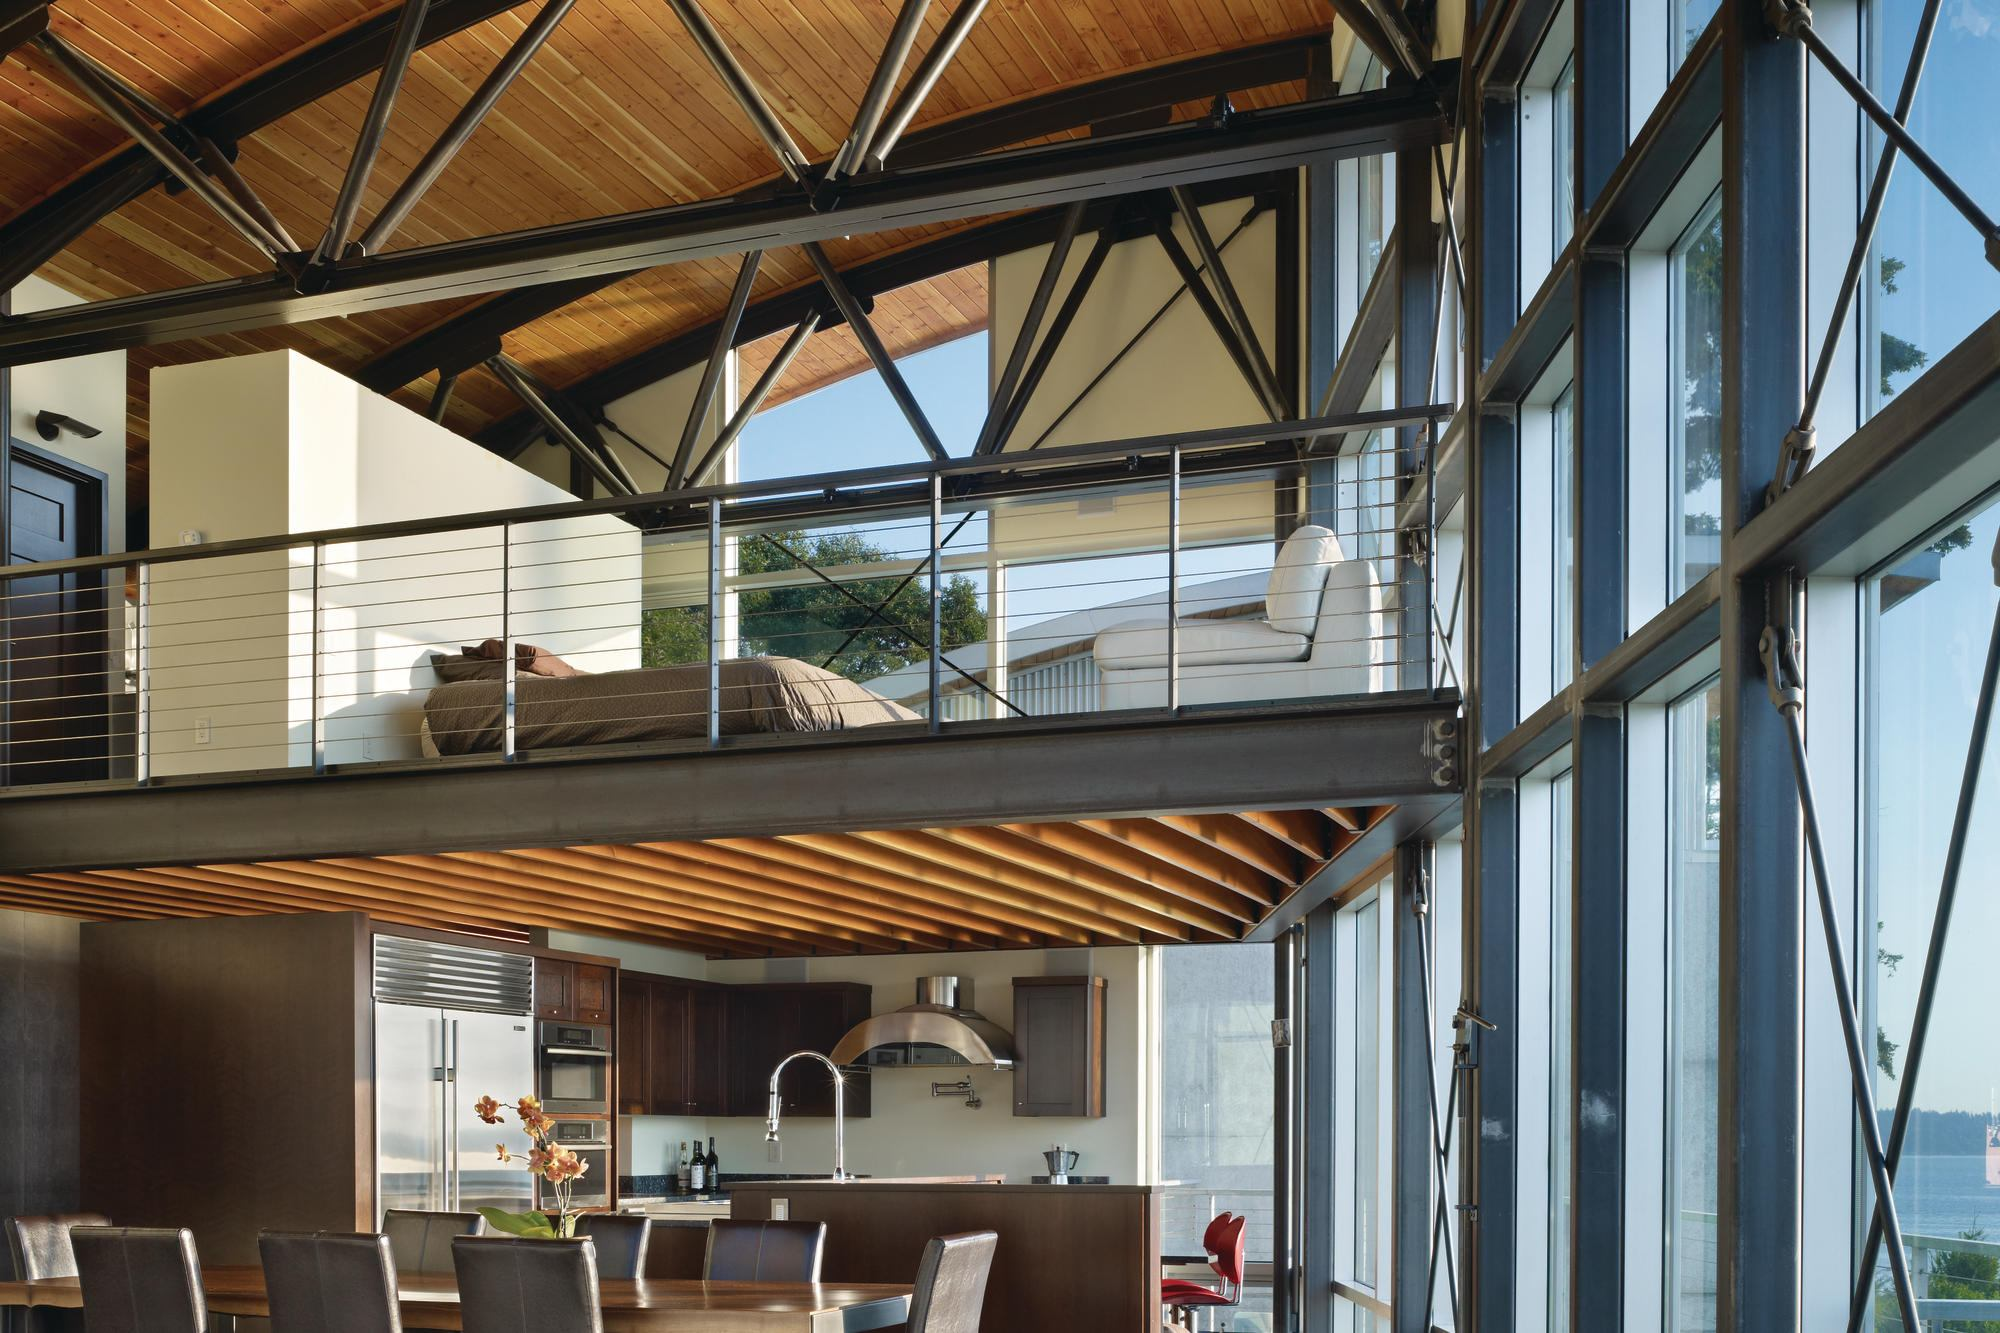 West Seattle Residence Builder Magazine Design Award